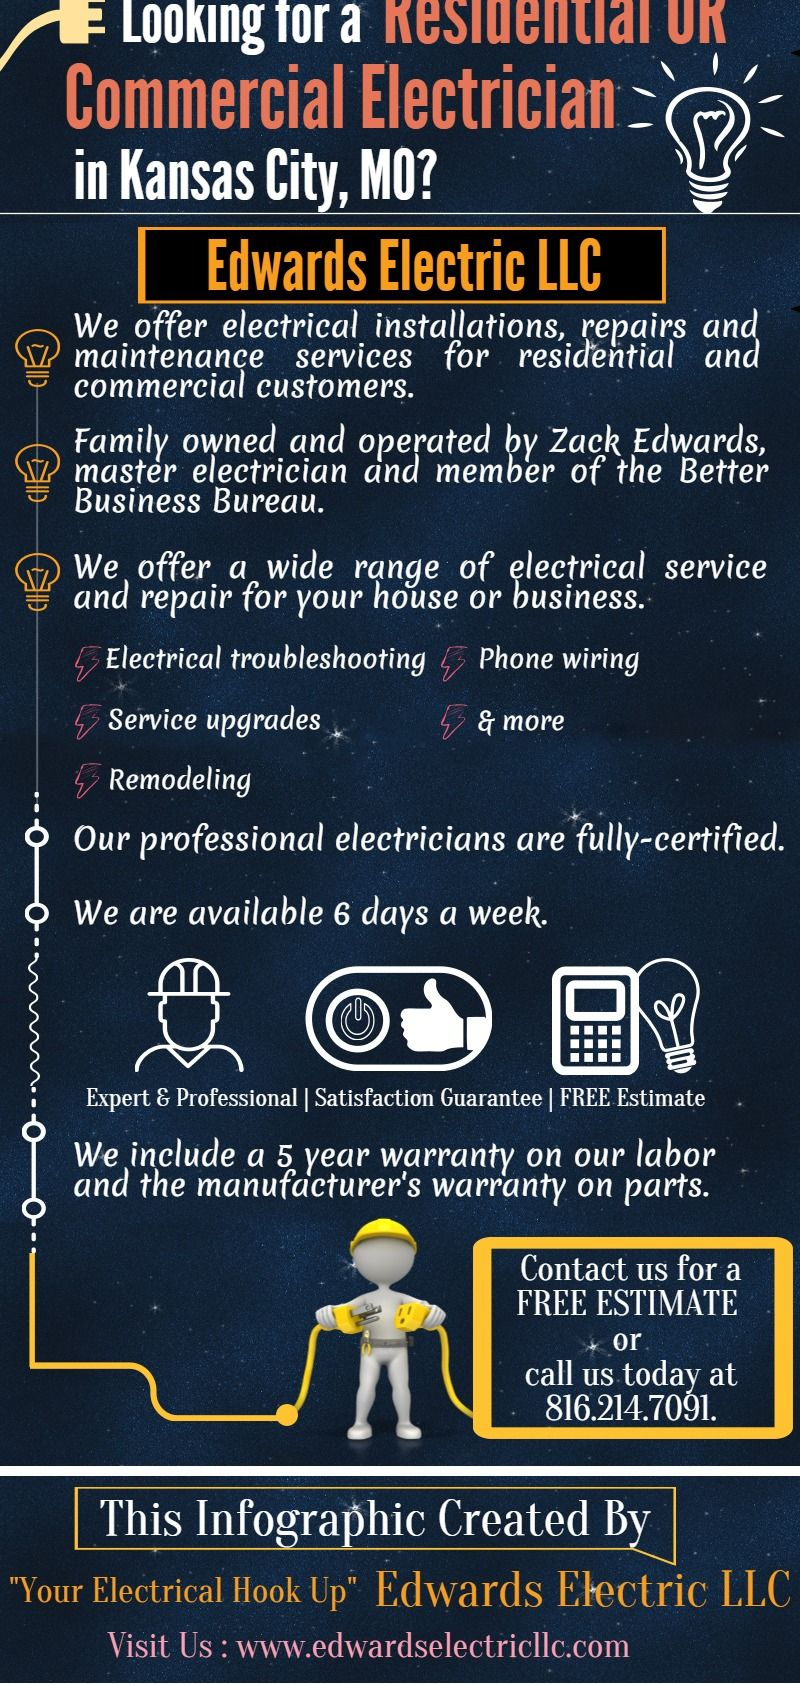 Qualified Electricians In Kansas City At Edwards Electric Llc Our Residential Wiring Upgrade Team Of Trained Electrical Contractors Will Be Capable Serving For All